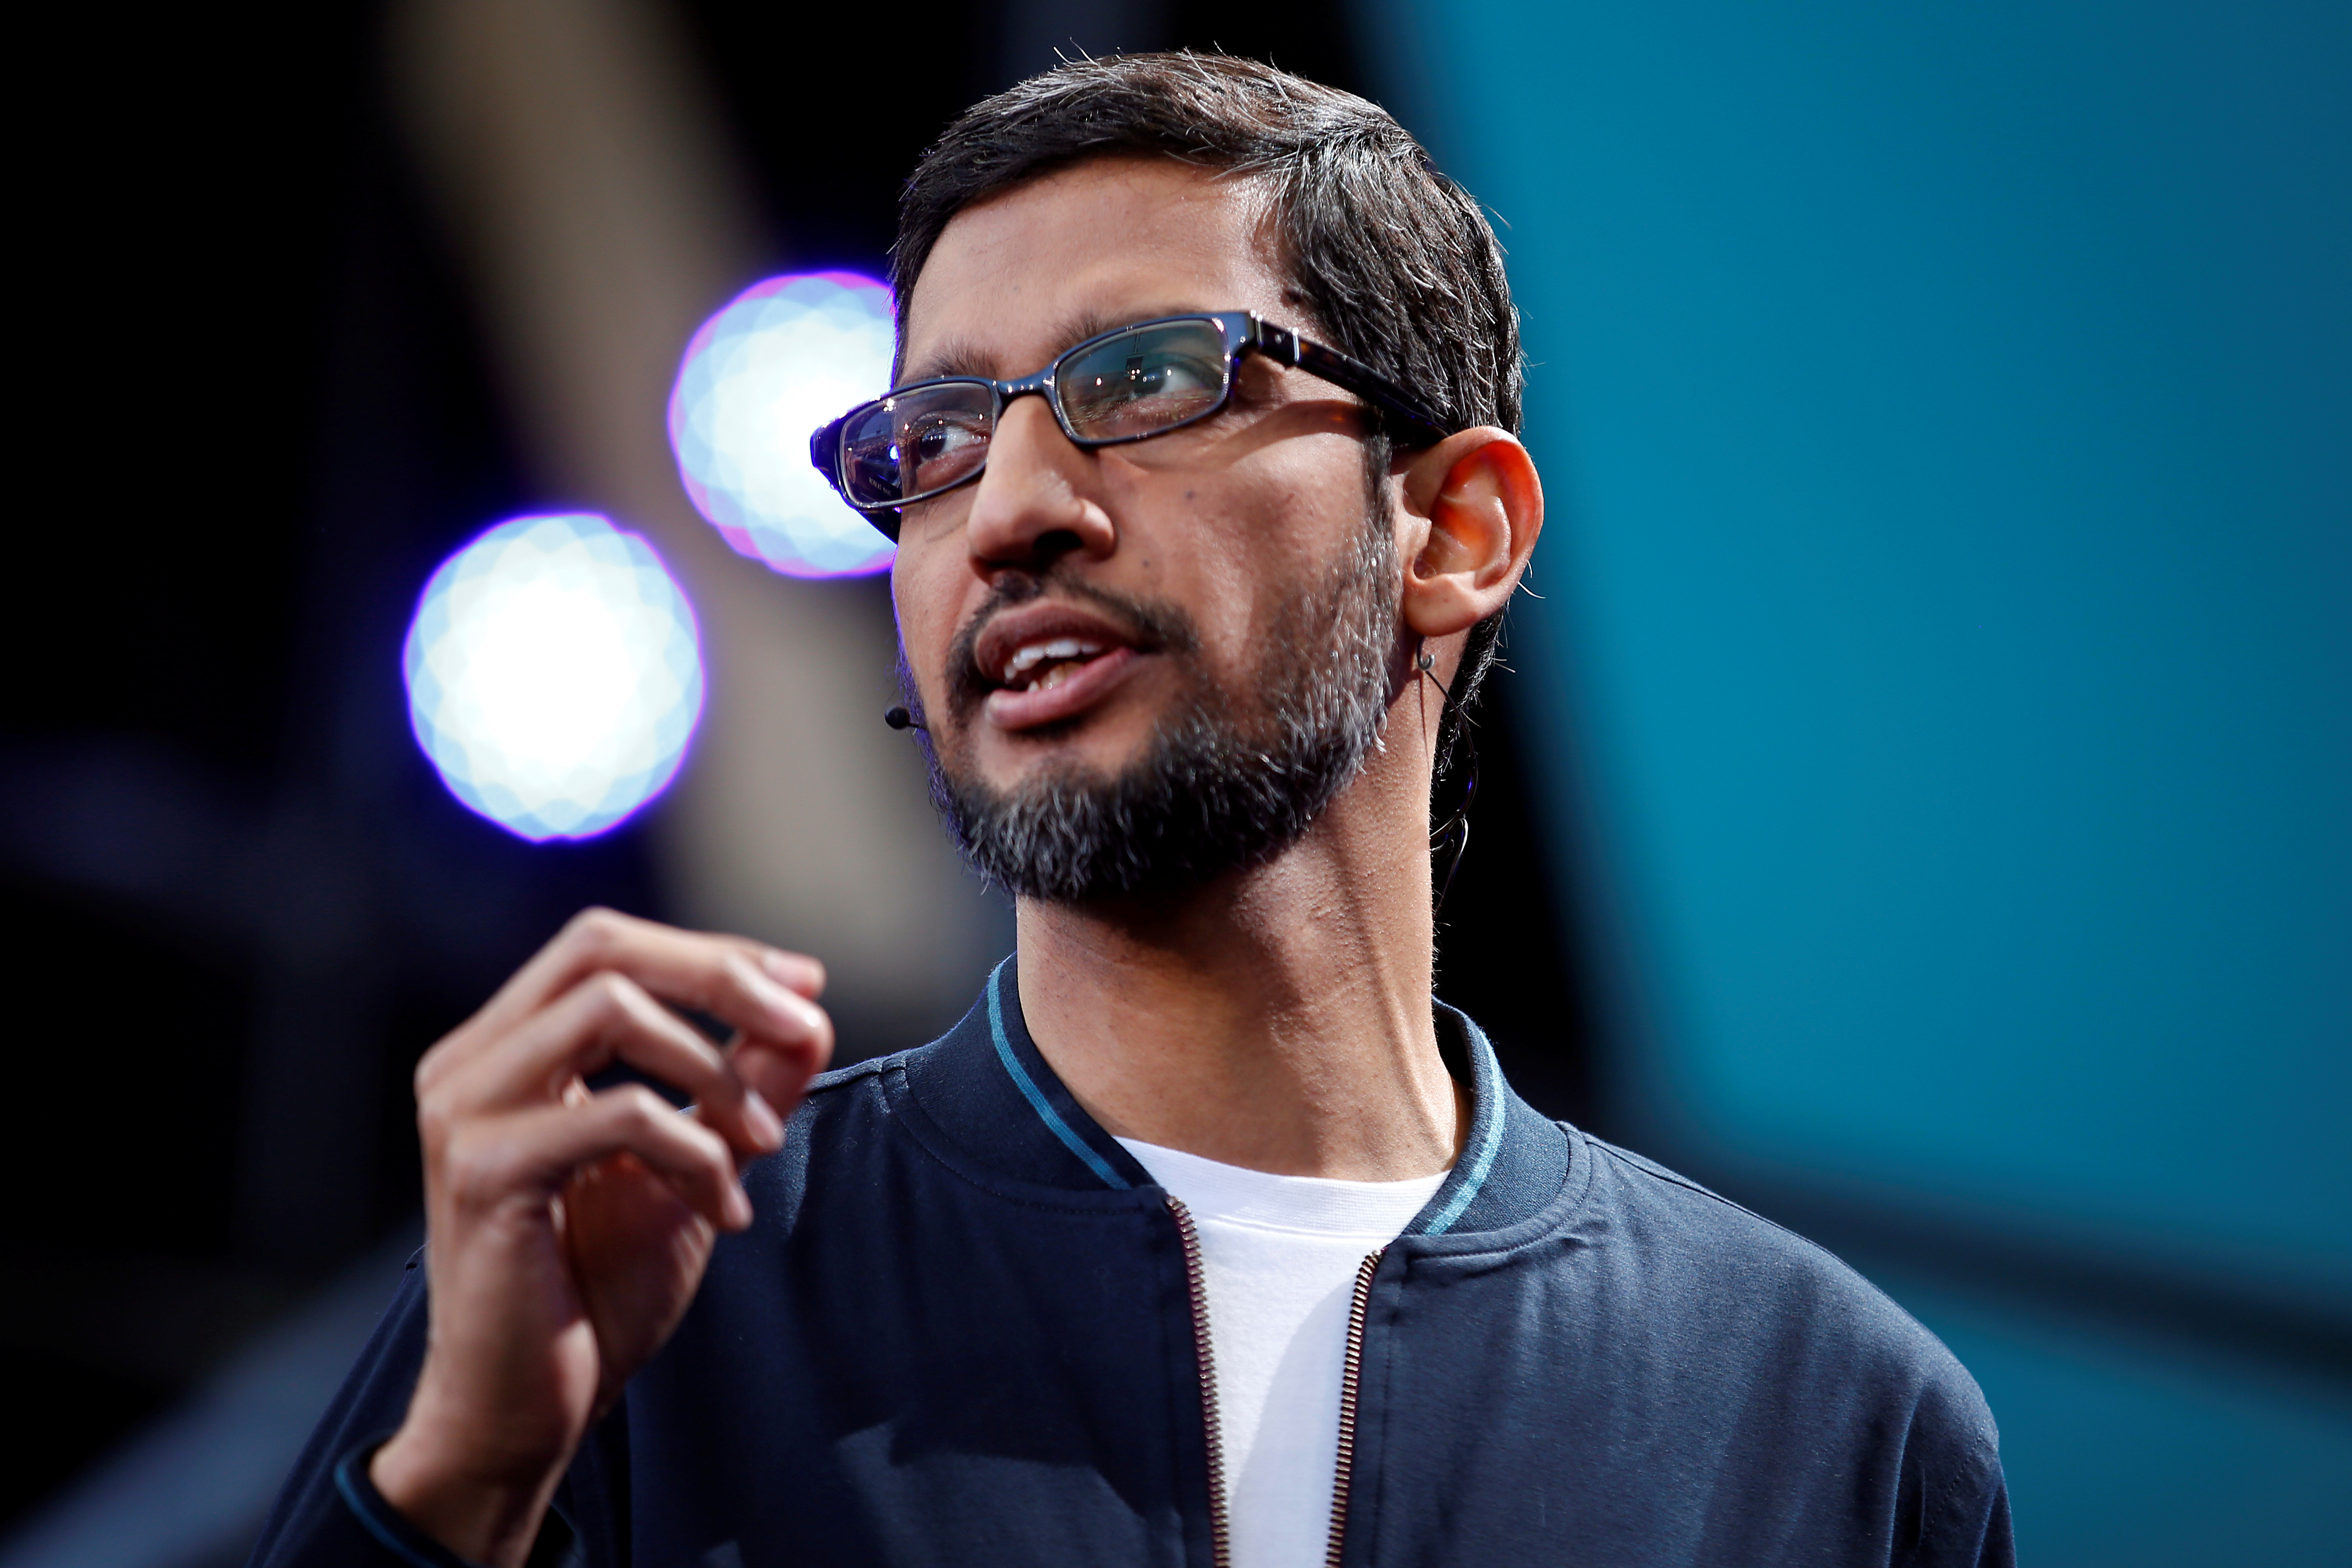 Google CEO Sundar Pichai delivers his keynote address during the Google I/O 2016 developers conference in Mountain View, California, U.S. May 18, 2016. REUTERS/Stephen Lam - D1AETEUJIIAA